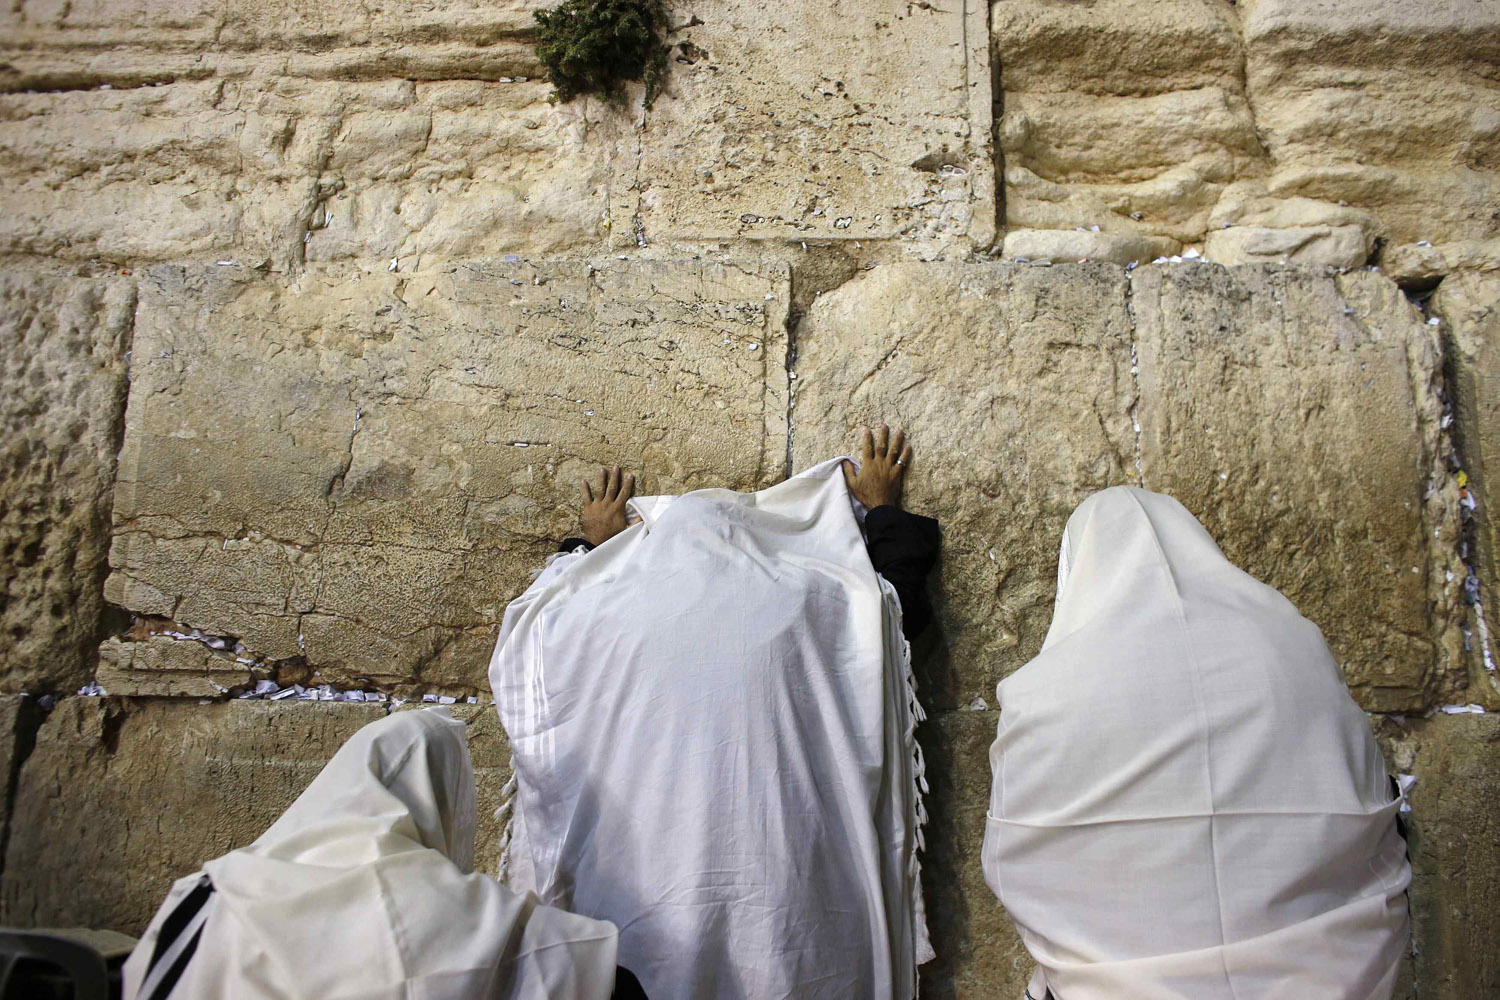 Sept. 3, 2013. Jewish worshippers pray at the Western Wall, Judaism's holiest prayer site, in Jerusalem's Old City.